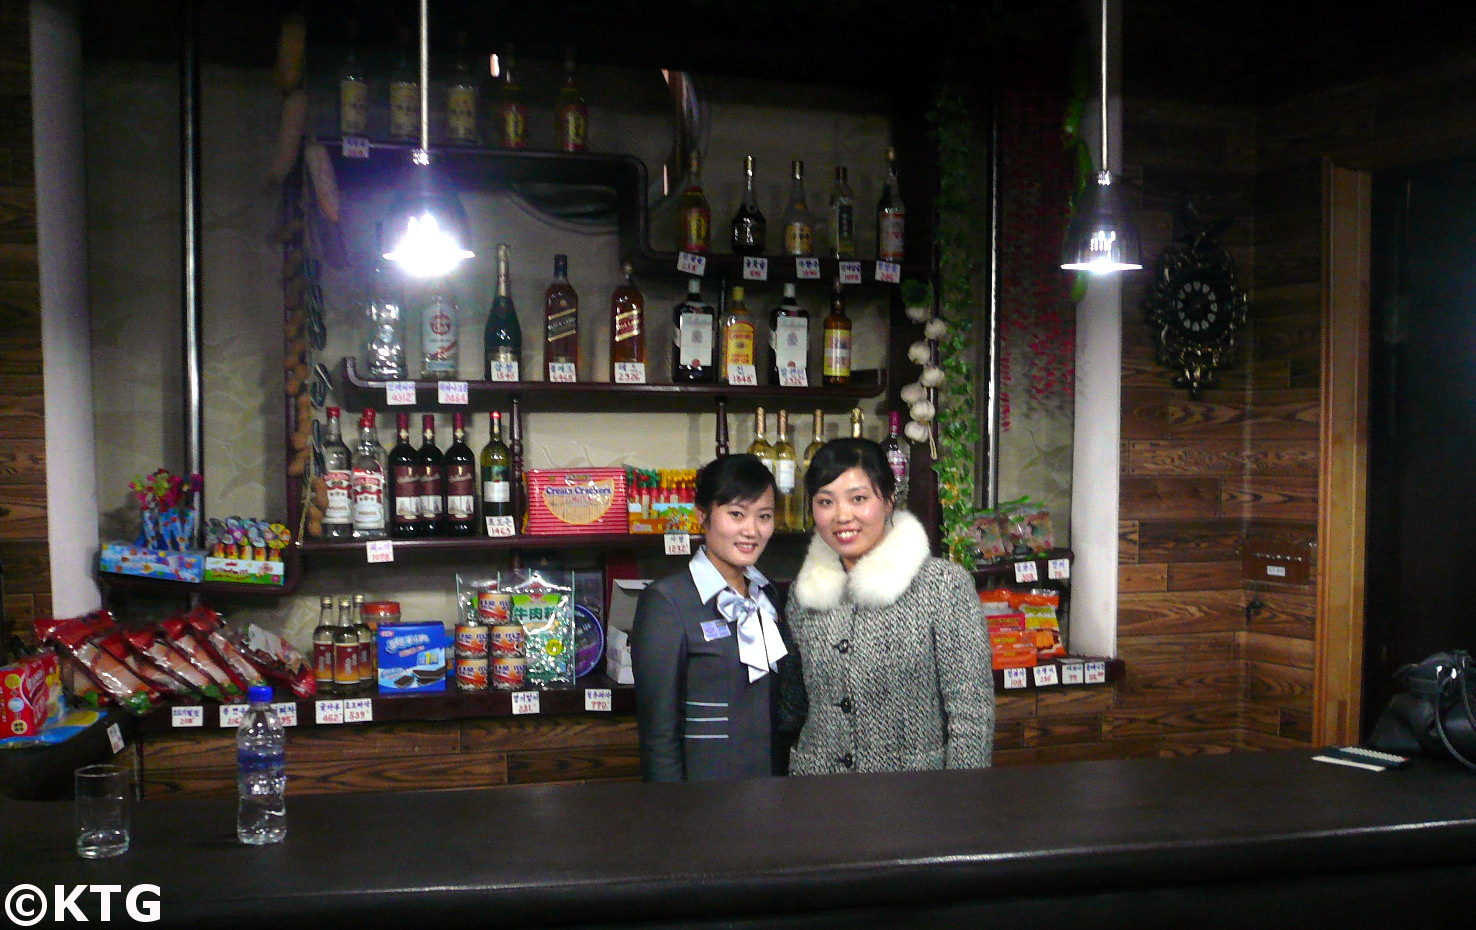 Ladies at a bar in North Korea at the Sinsunhang hotel Hamhung, the second largest city of the DPRK. Picture taken by KTG Tours